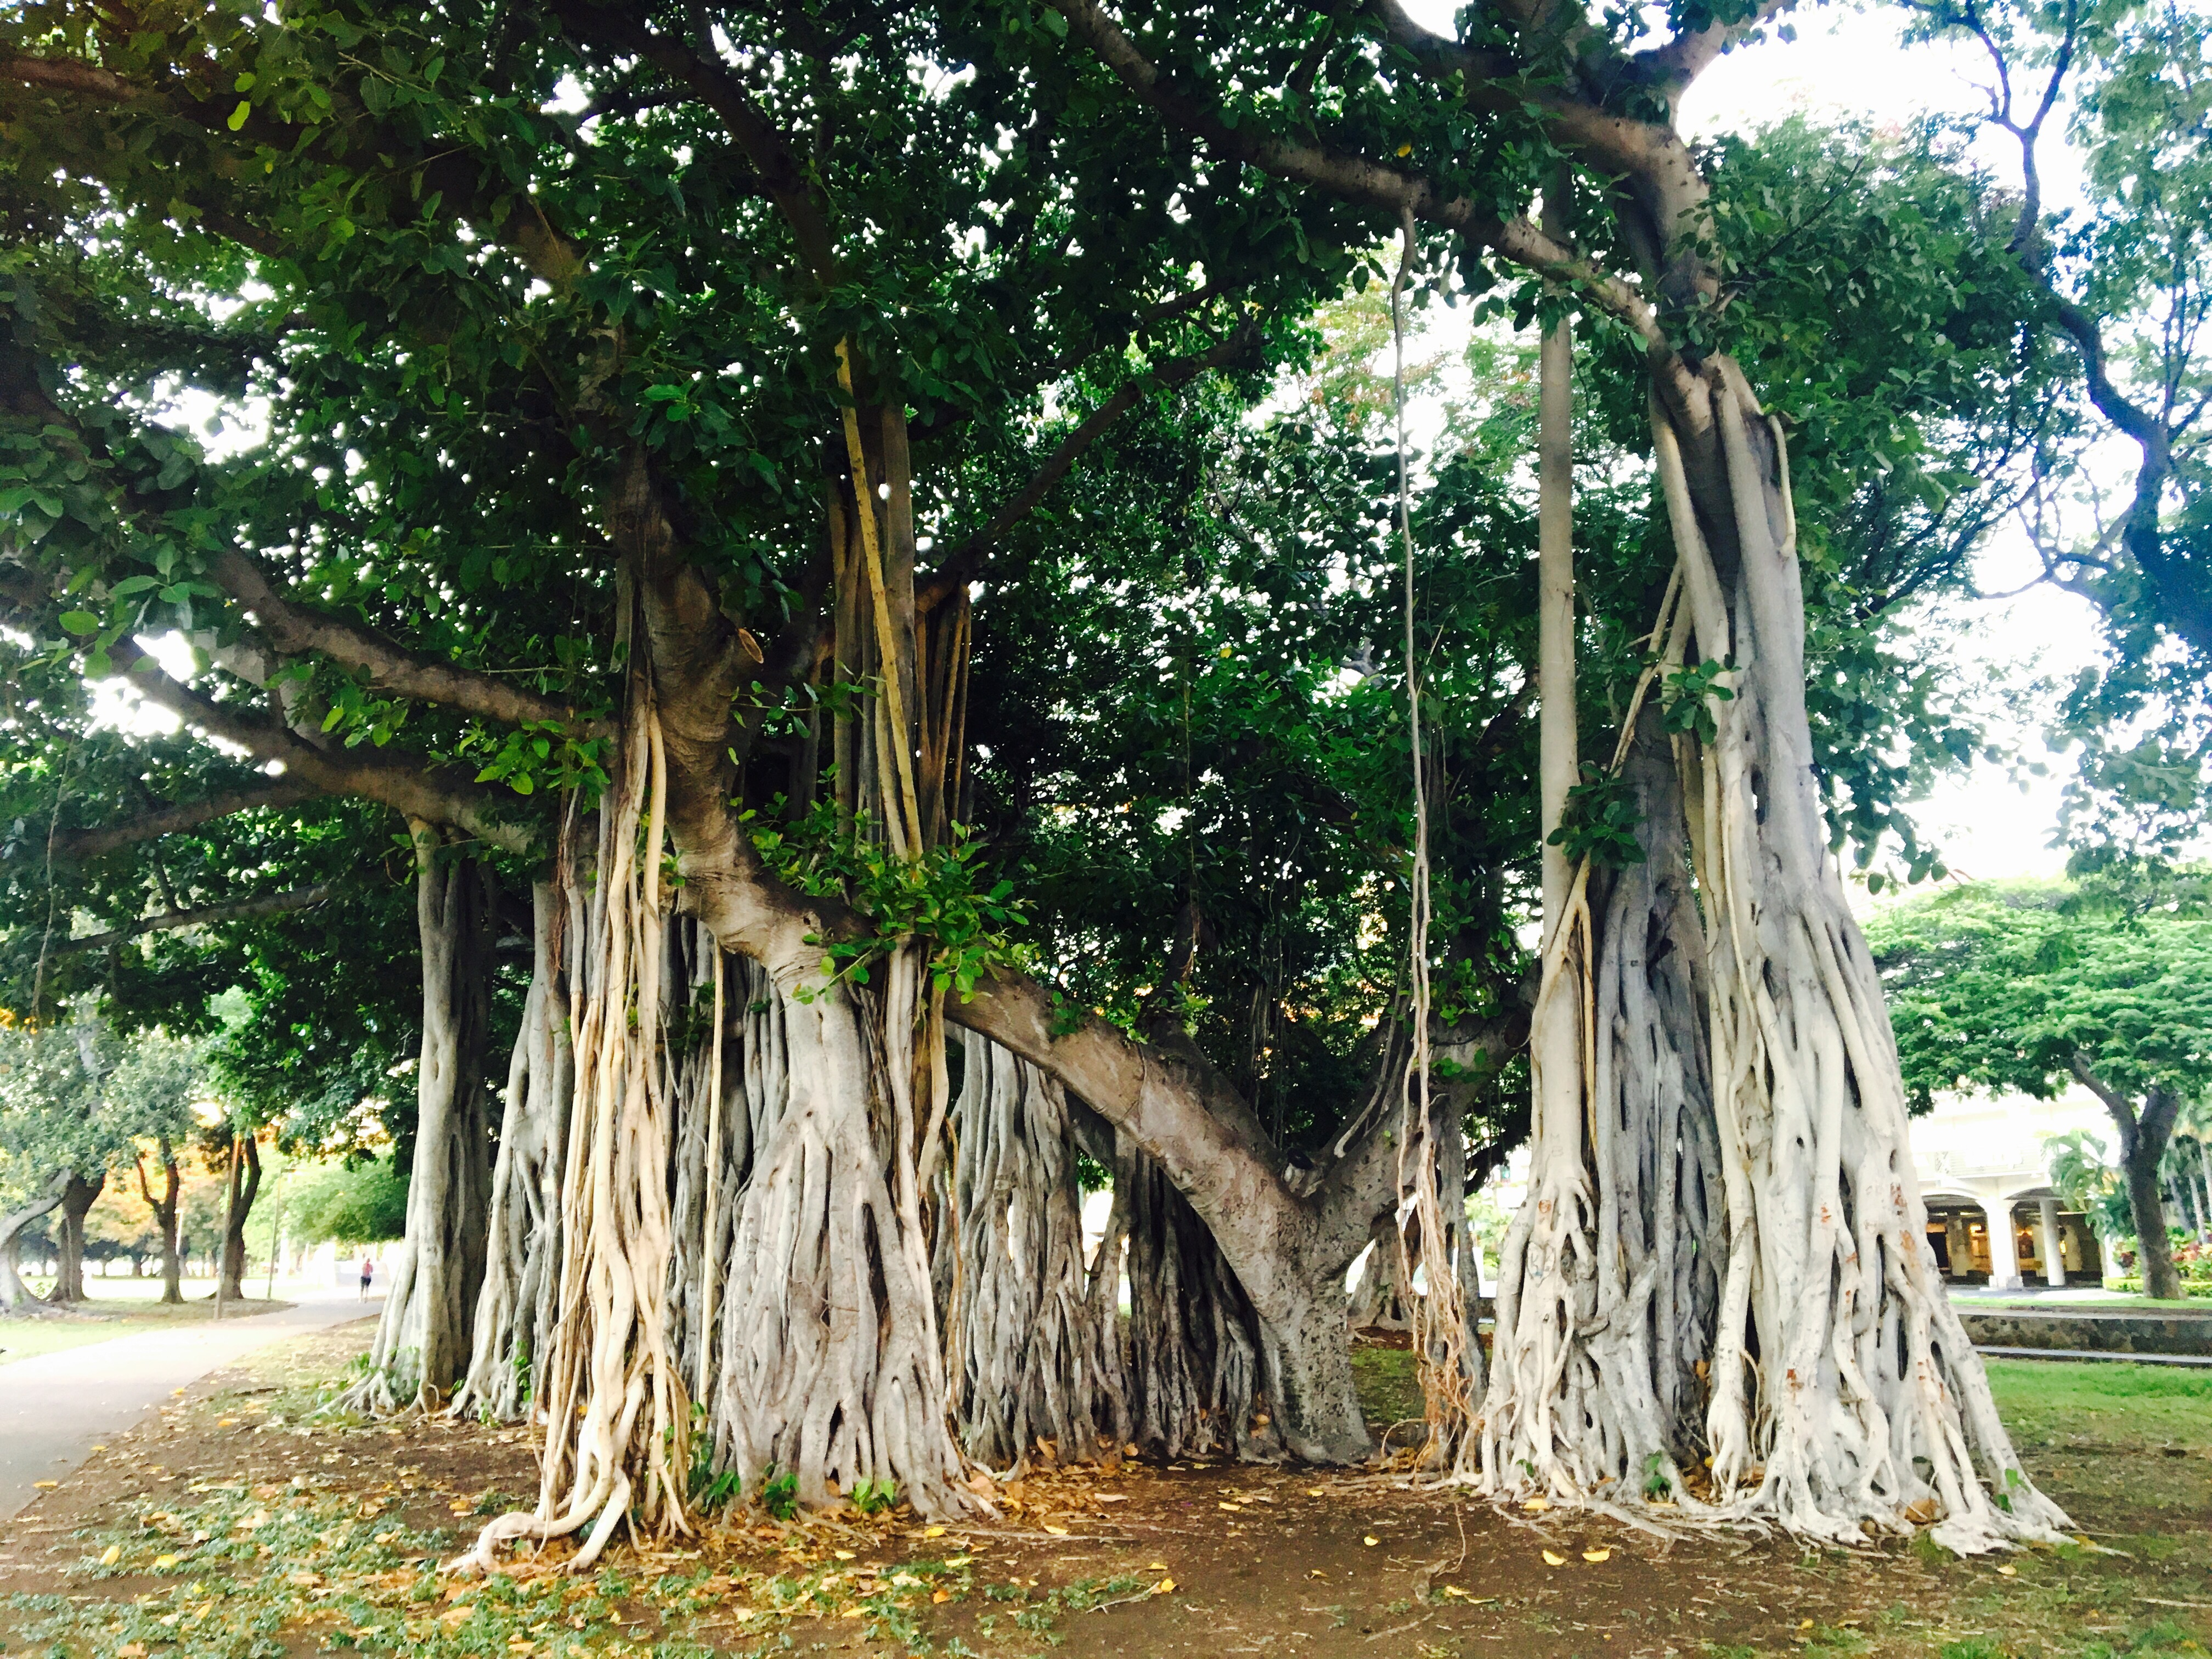 10 things you need to know about banyan trees | Under The Banyan